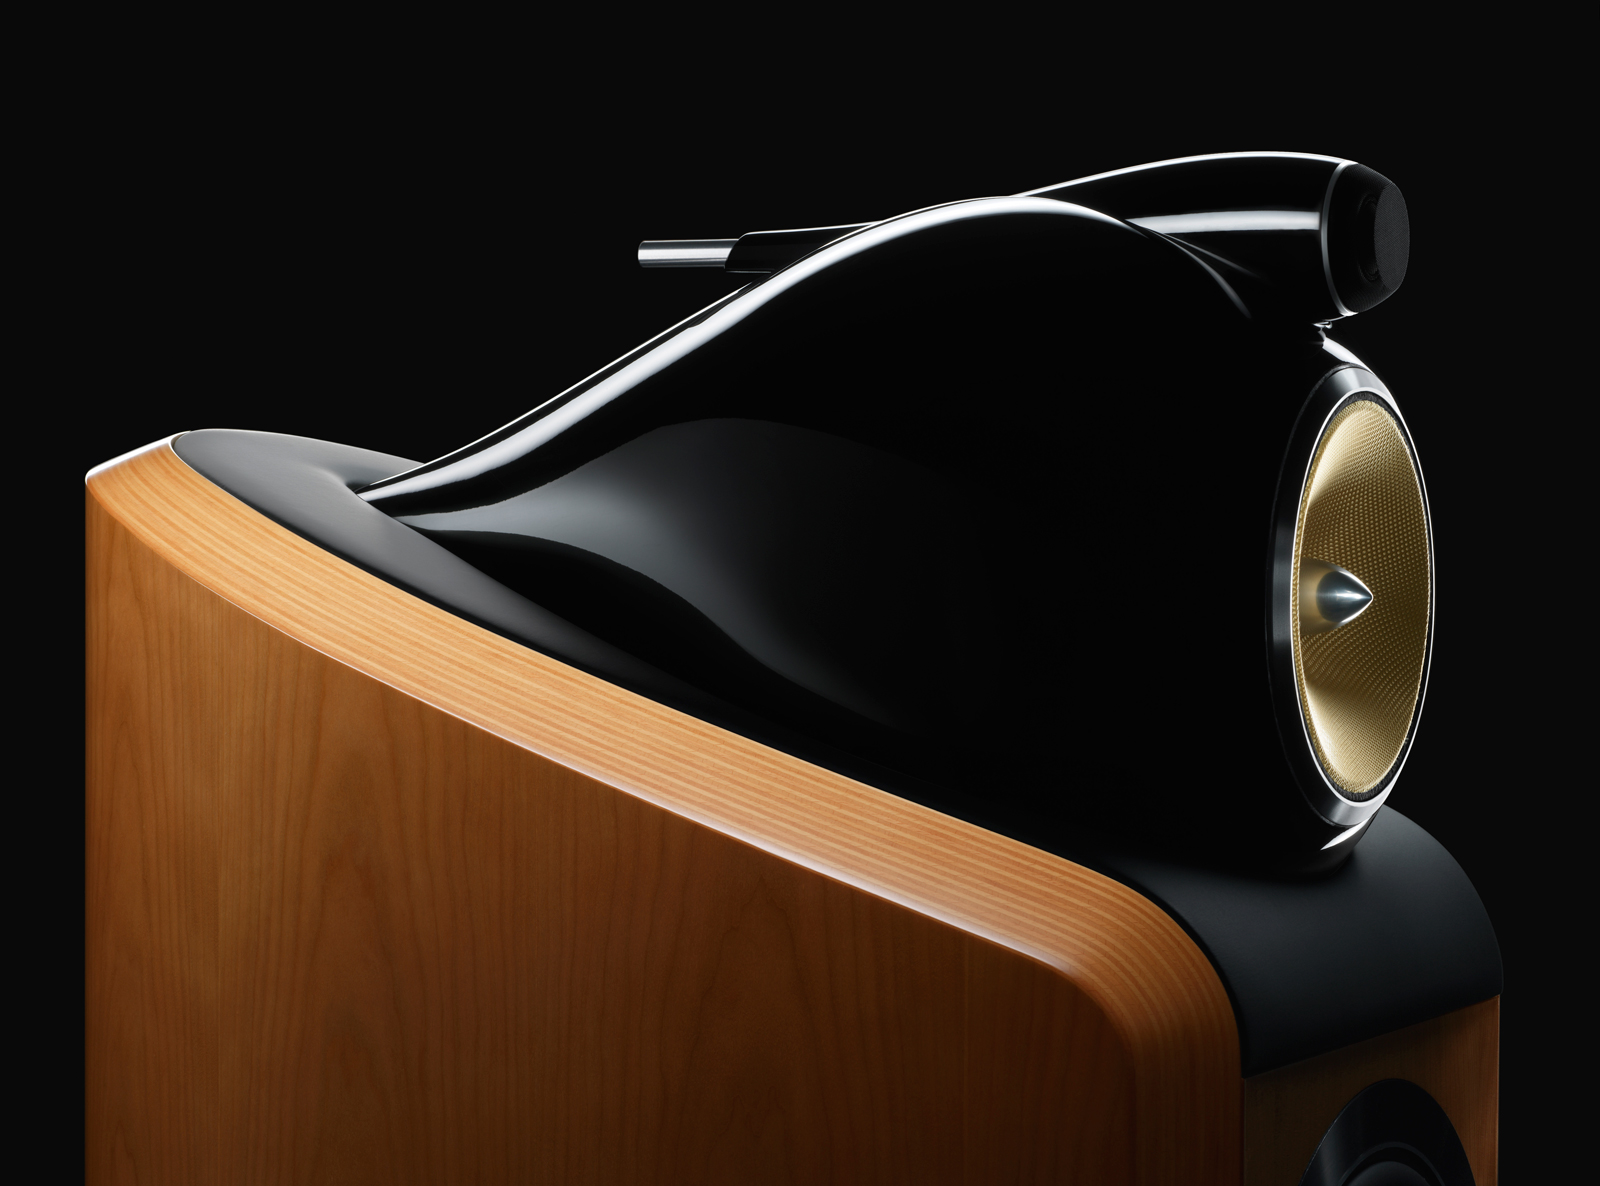 news bowers and wilkins 800 diamond series now available. Black Bedroom Furniture Sets. Home Design Ideas